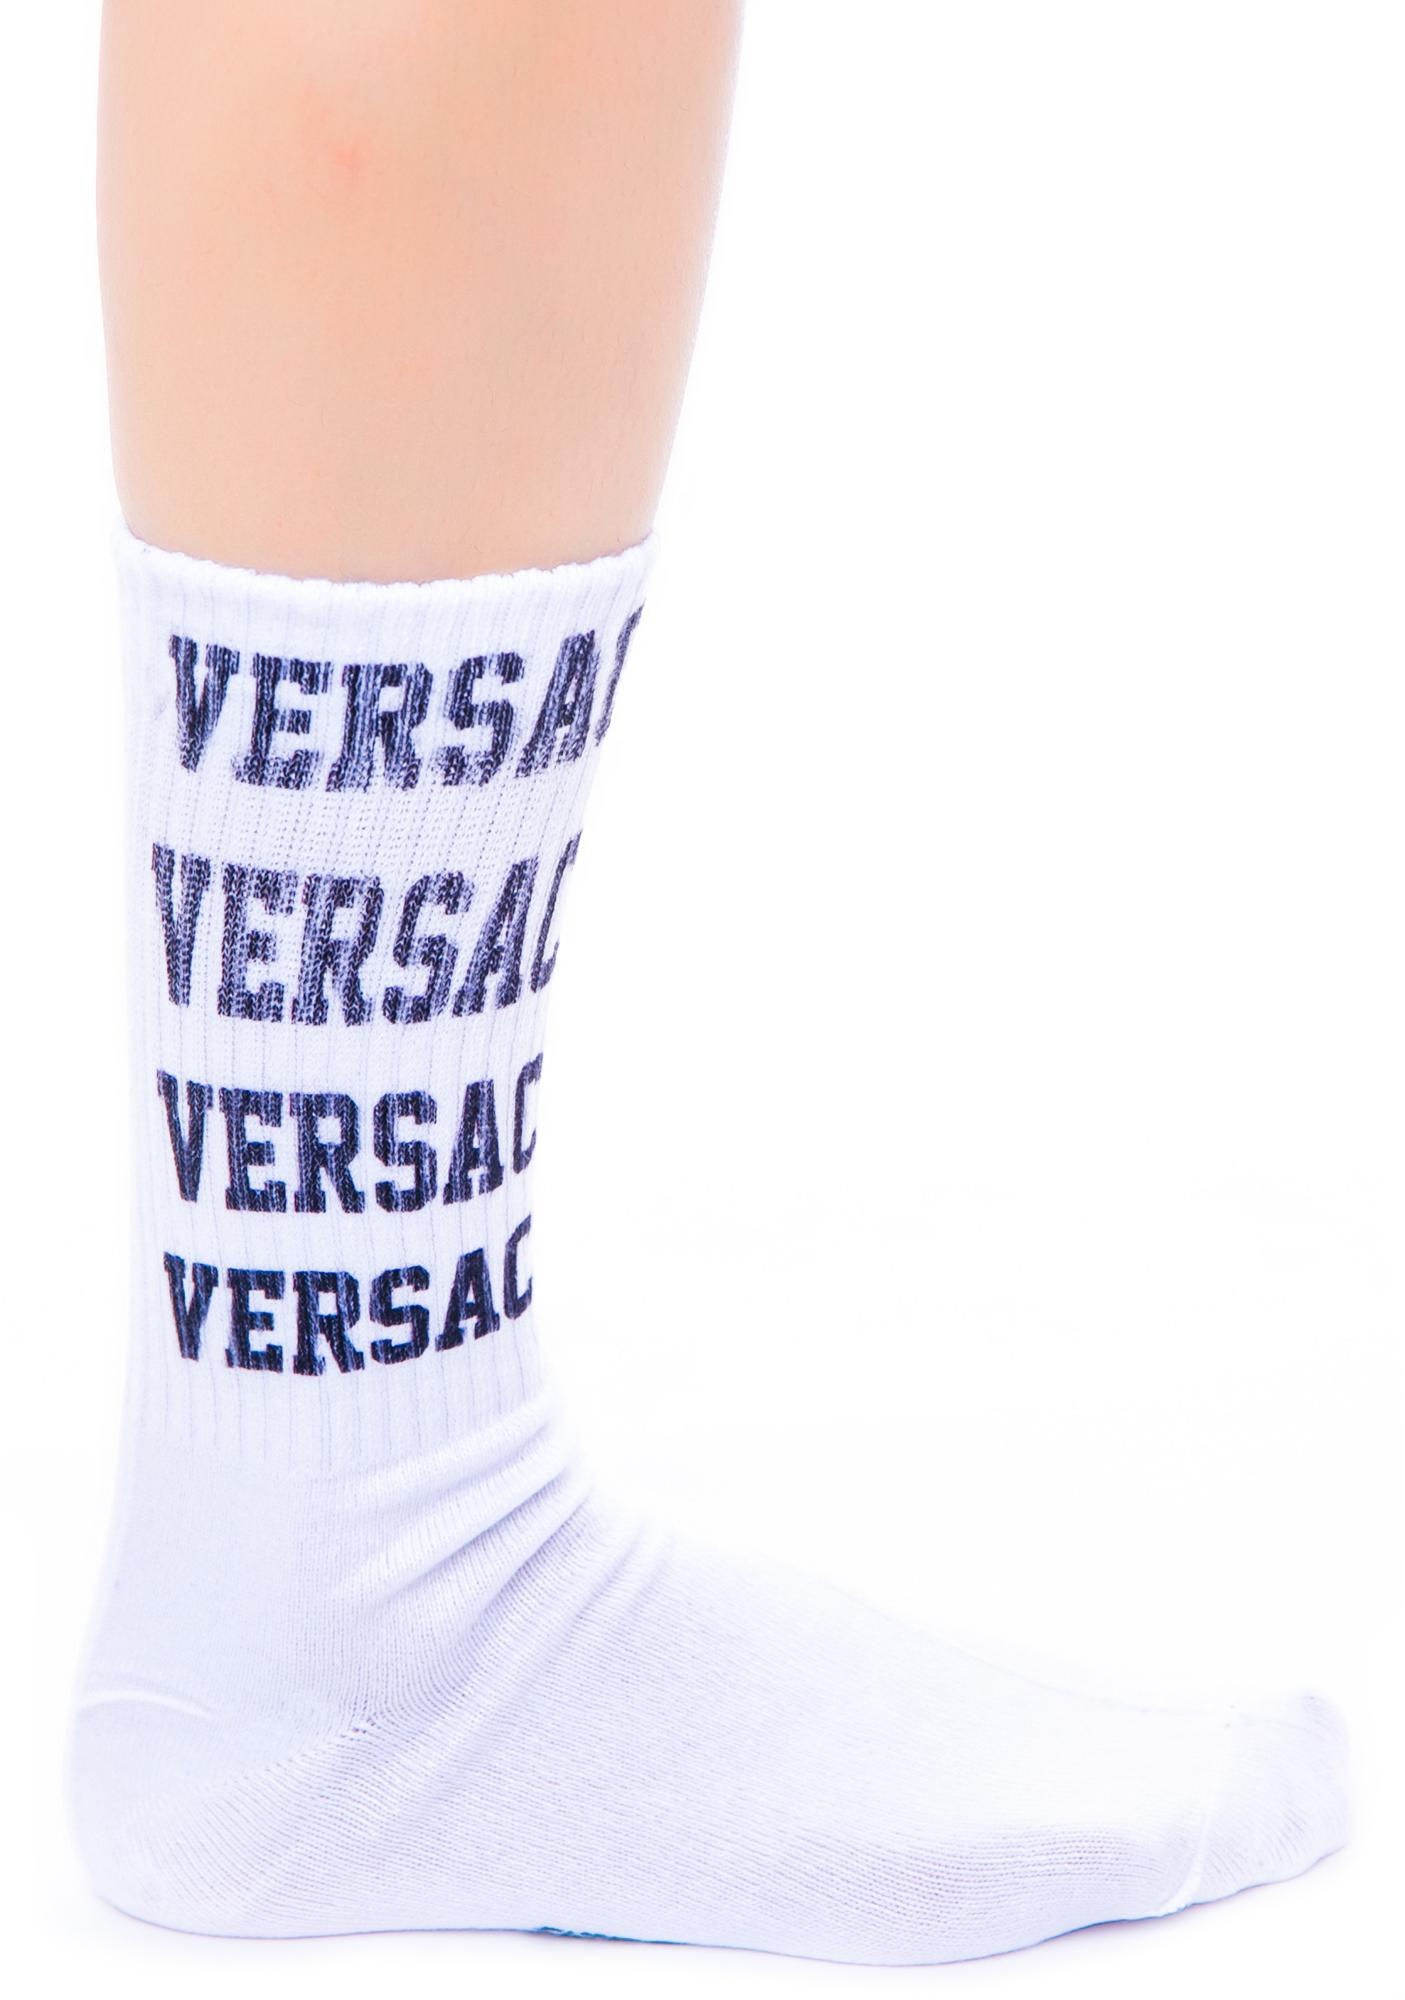 O Mighty Ver-sah-chee Socks